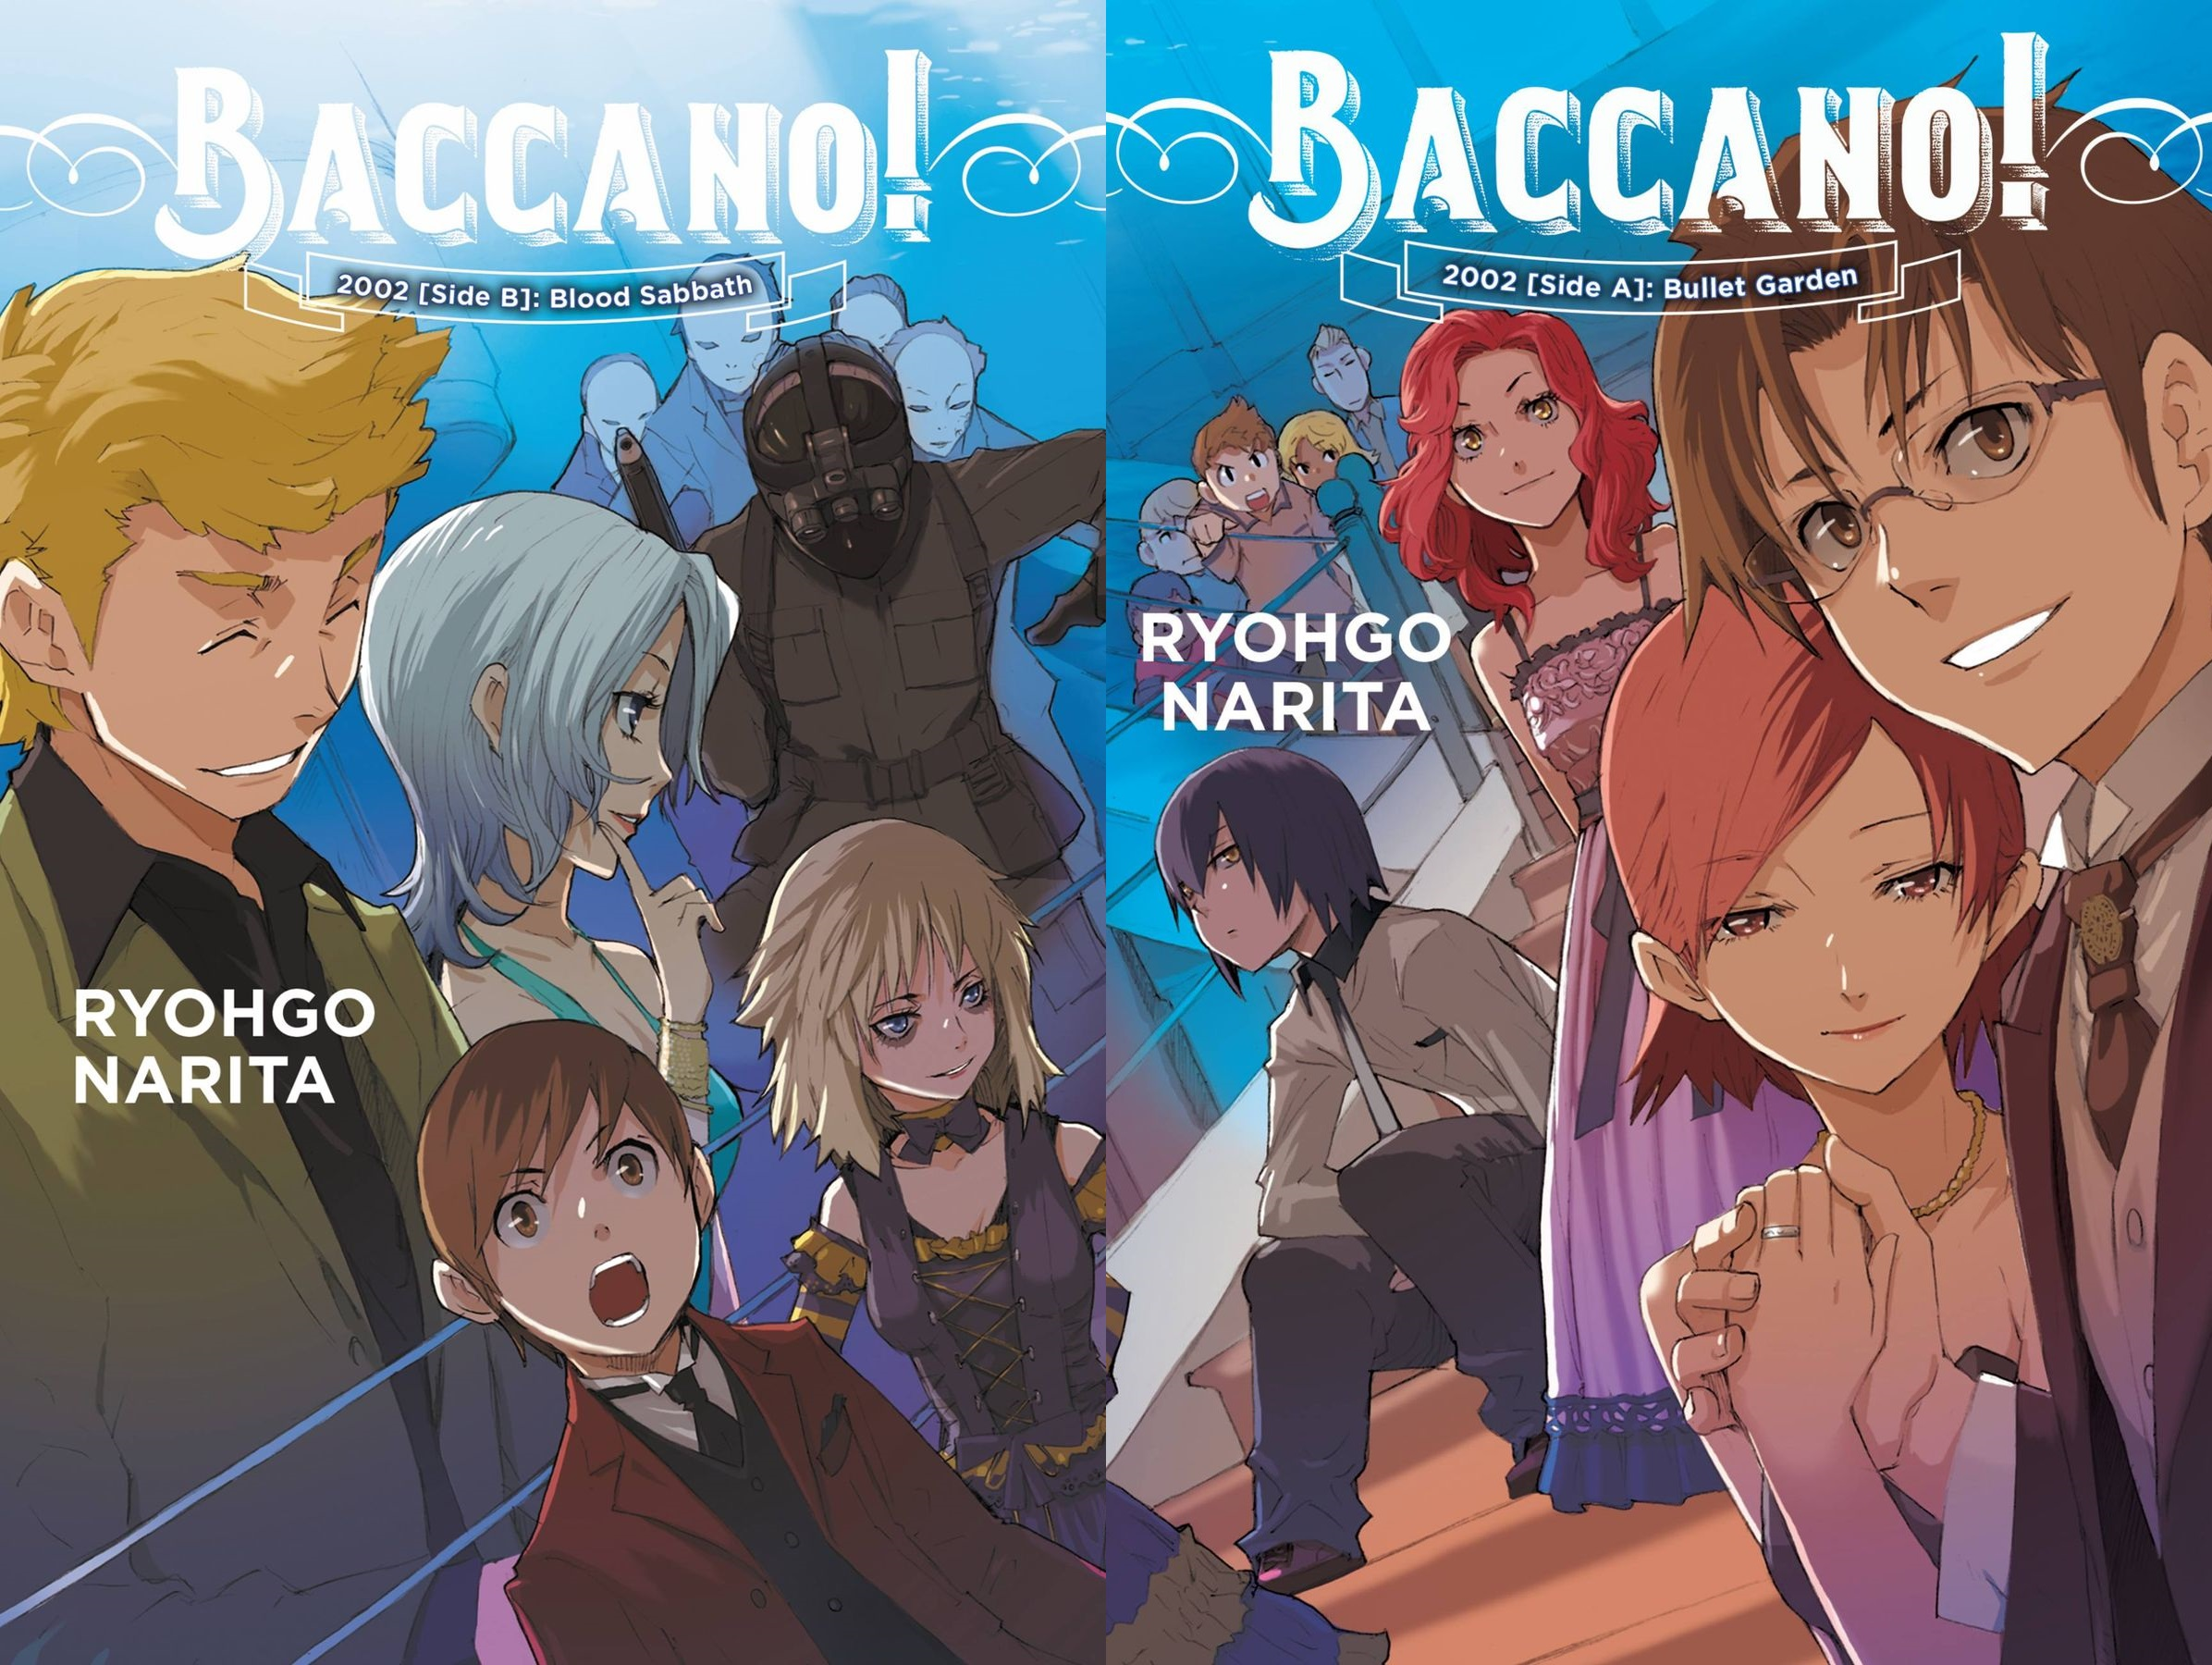 Featured image for Baccano! Volume 12: 2002 [Side A]: Bullet Garden and Baccano! Volume 13: 2002 [Side B]: Blood Sabbath Review